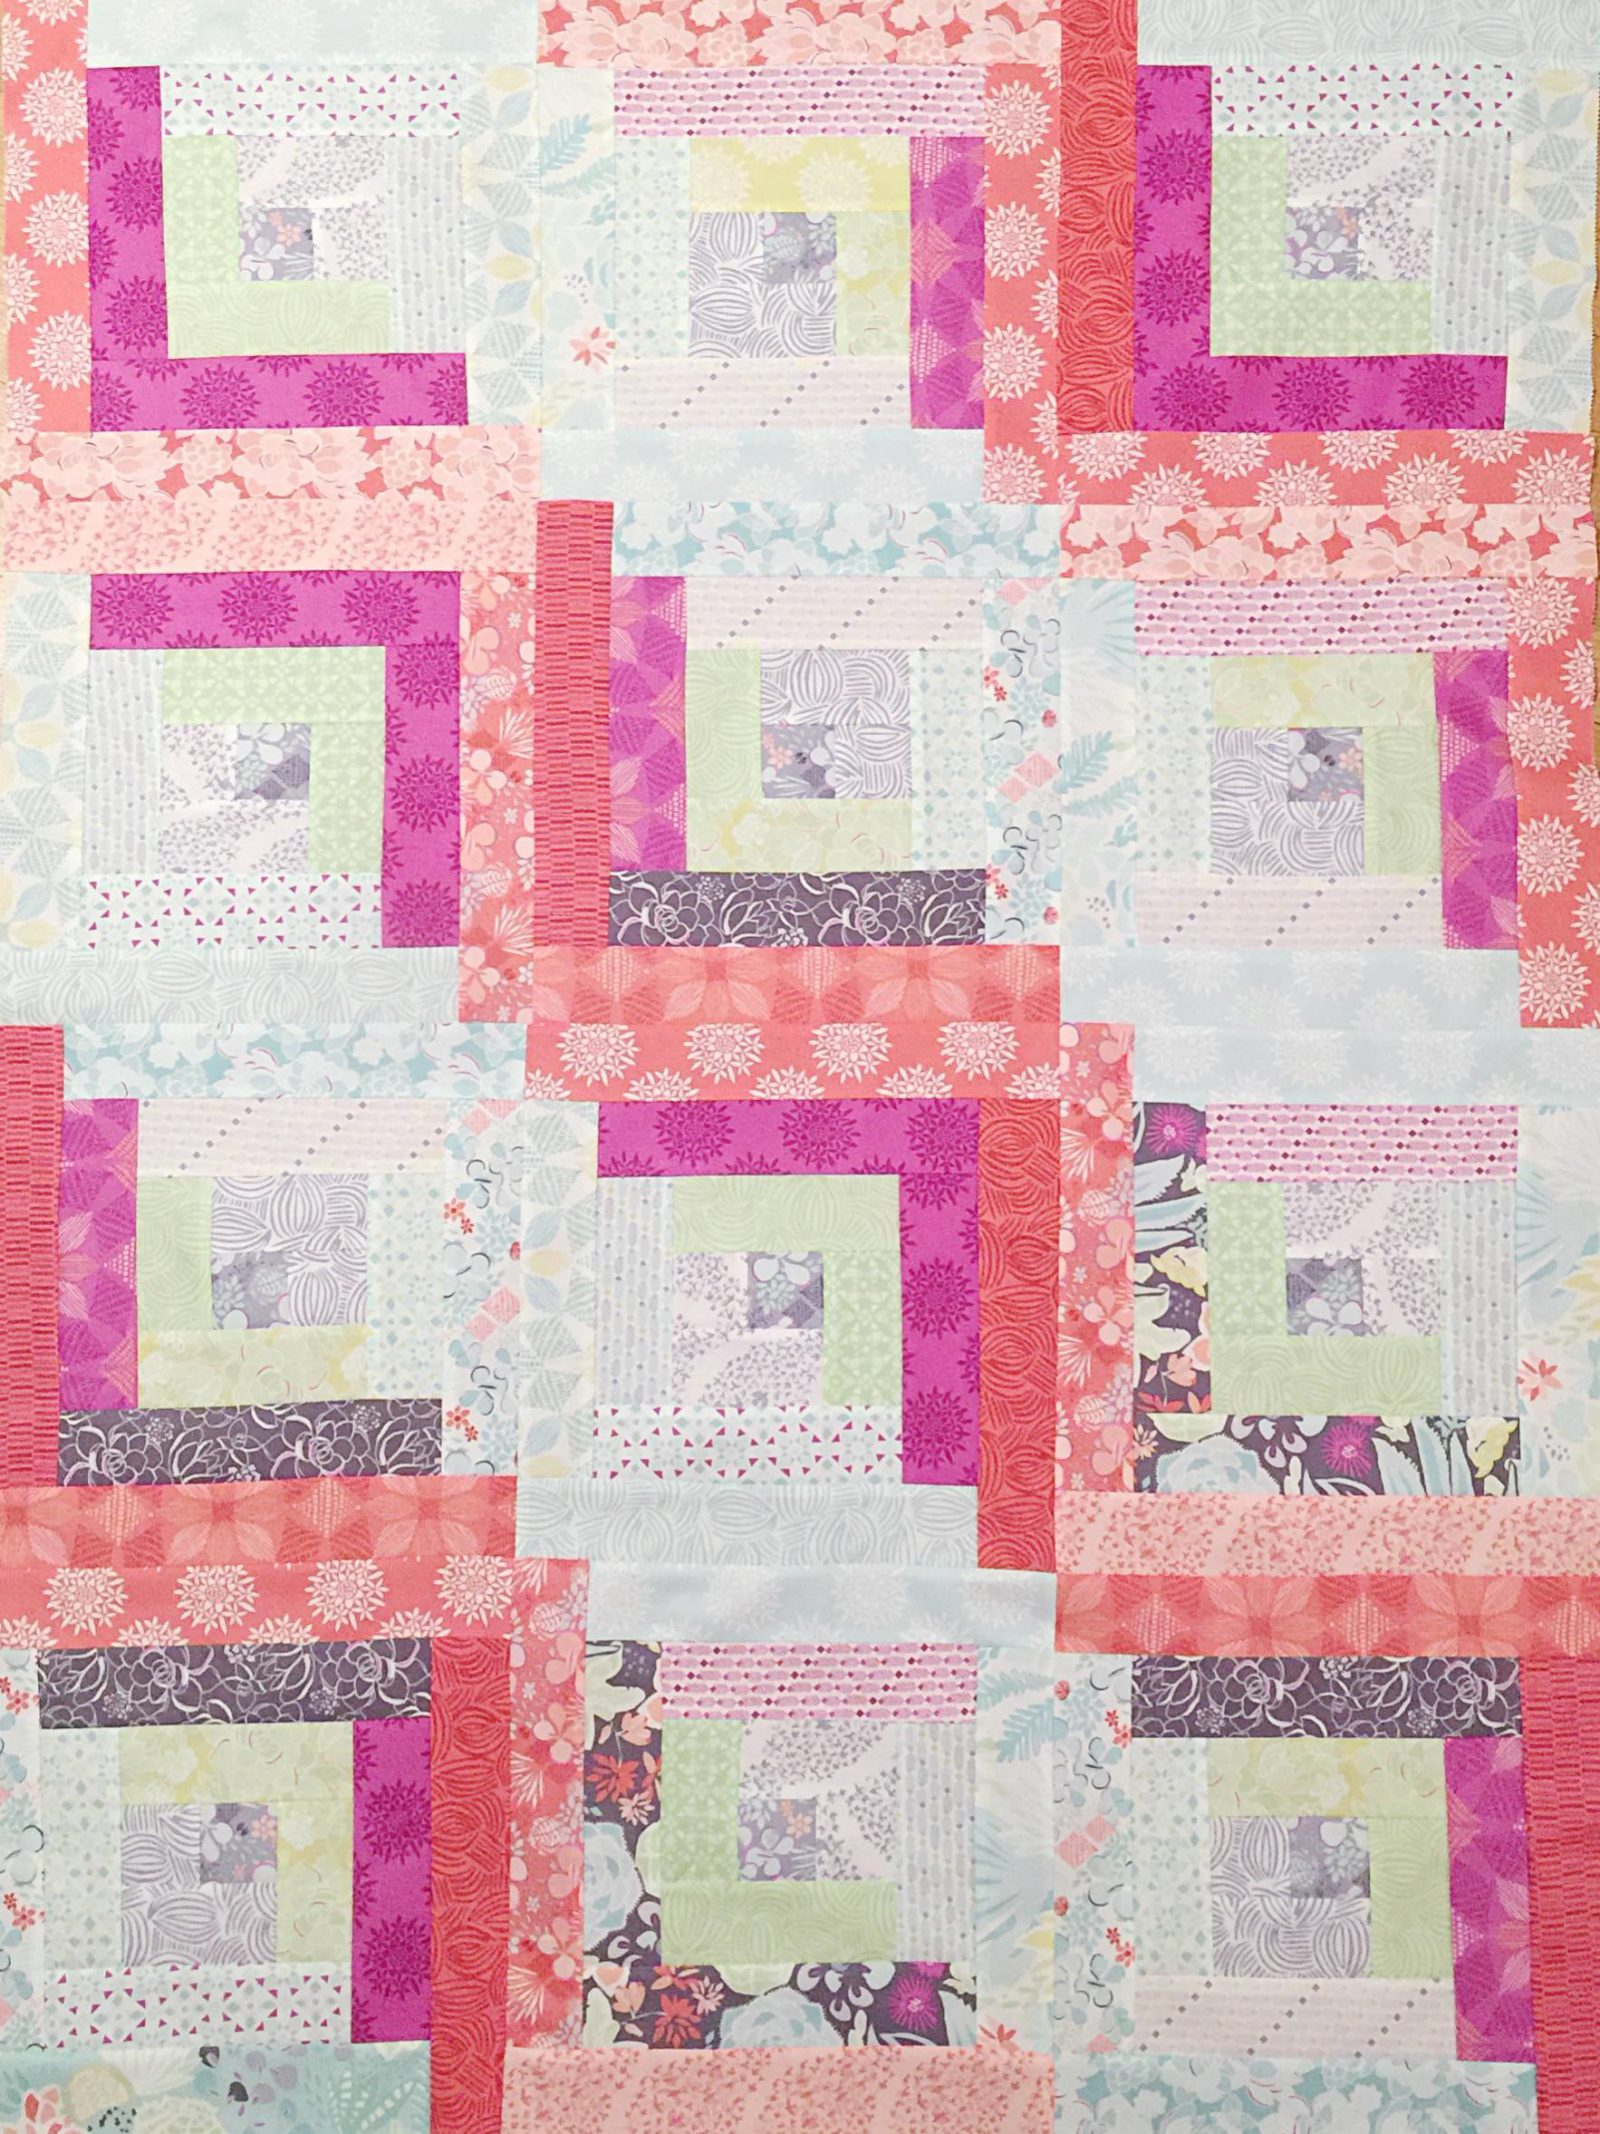 1 22 jelly roll quilts-1